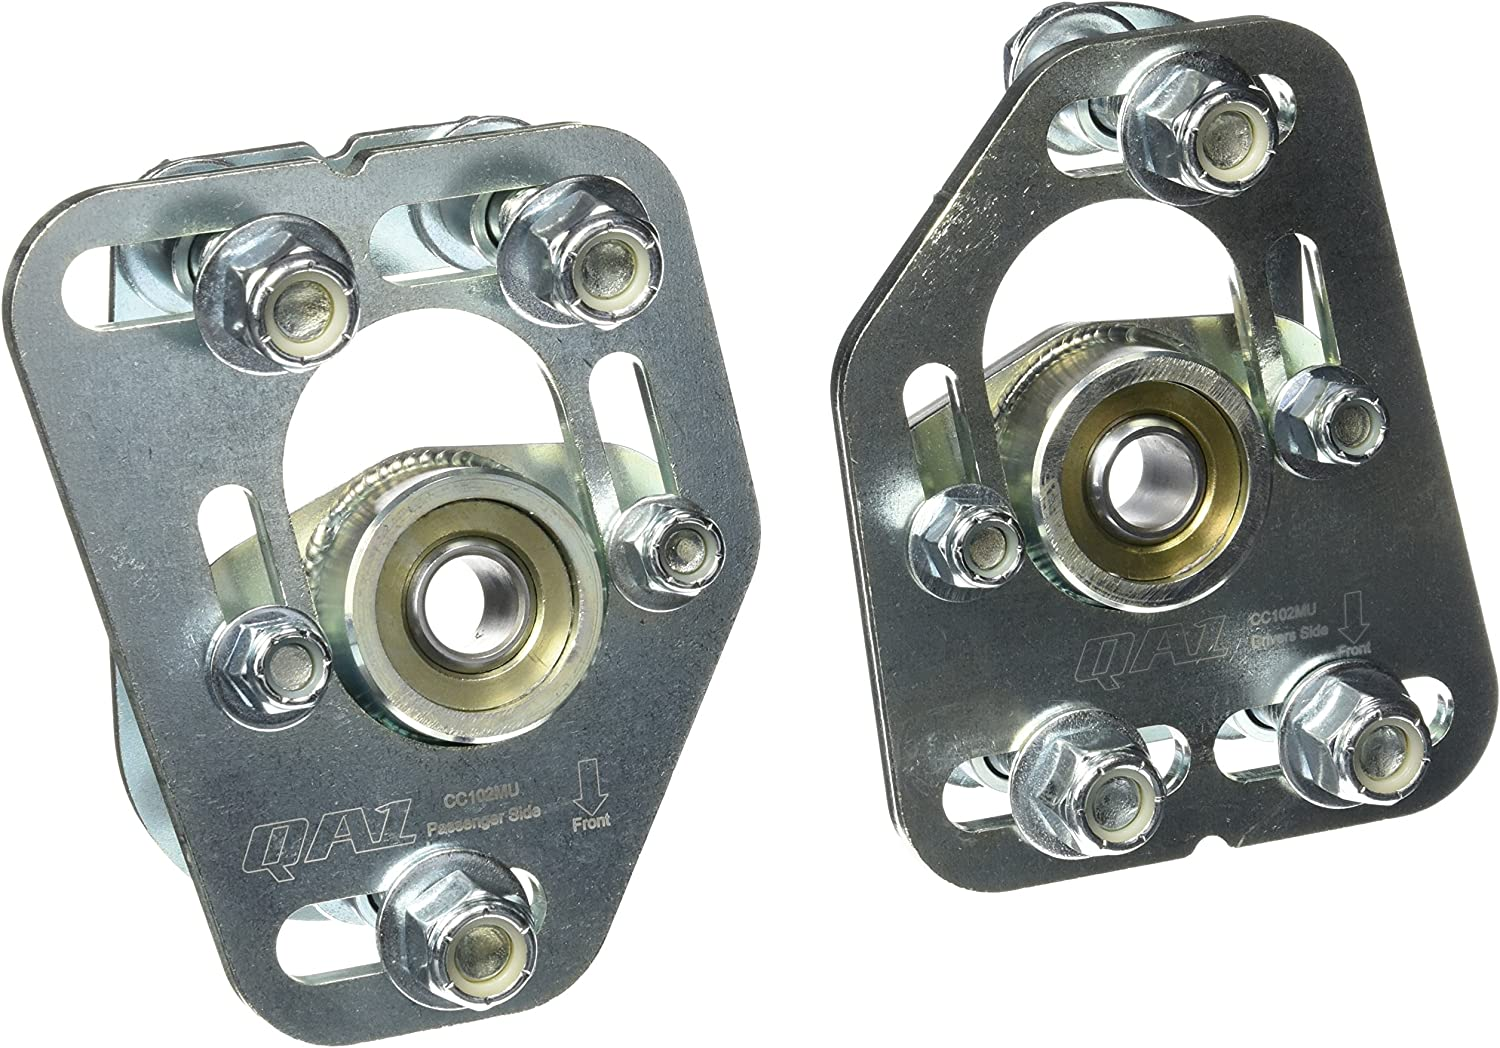 QA1 CC104MU Caster//Camber Plate for Mustang